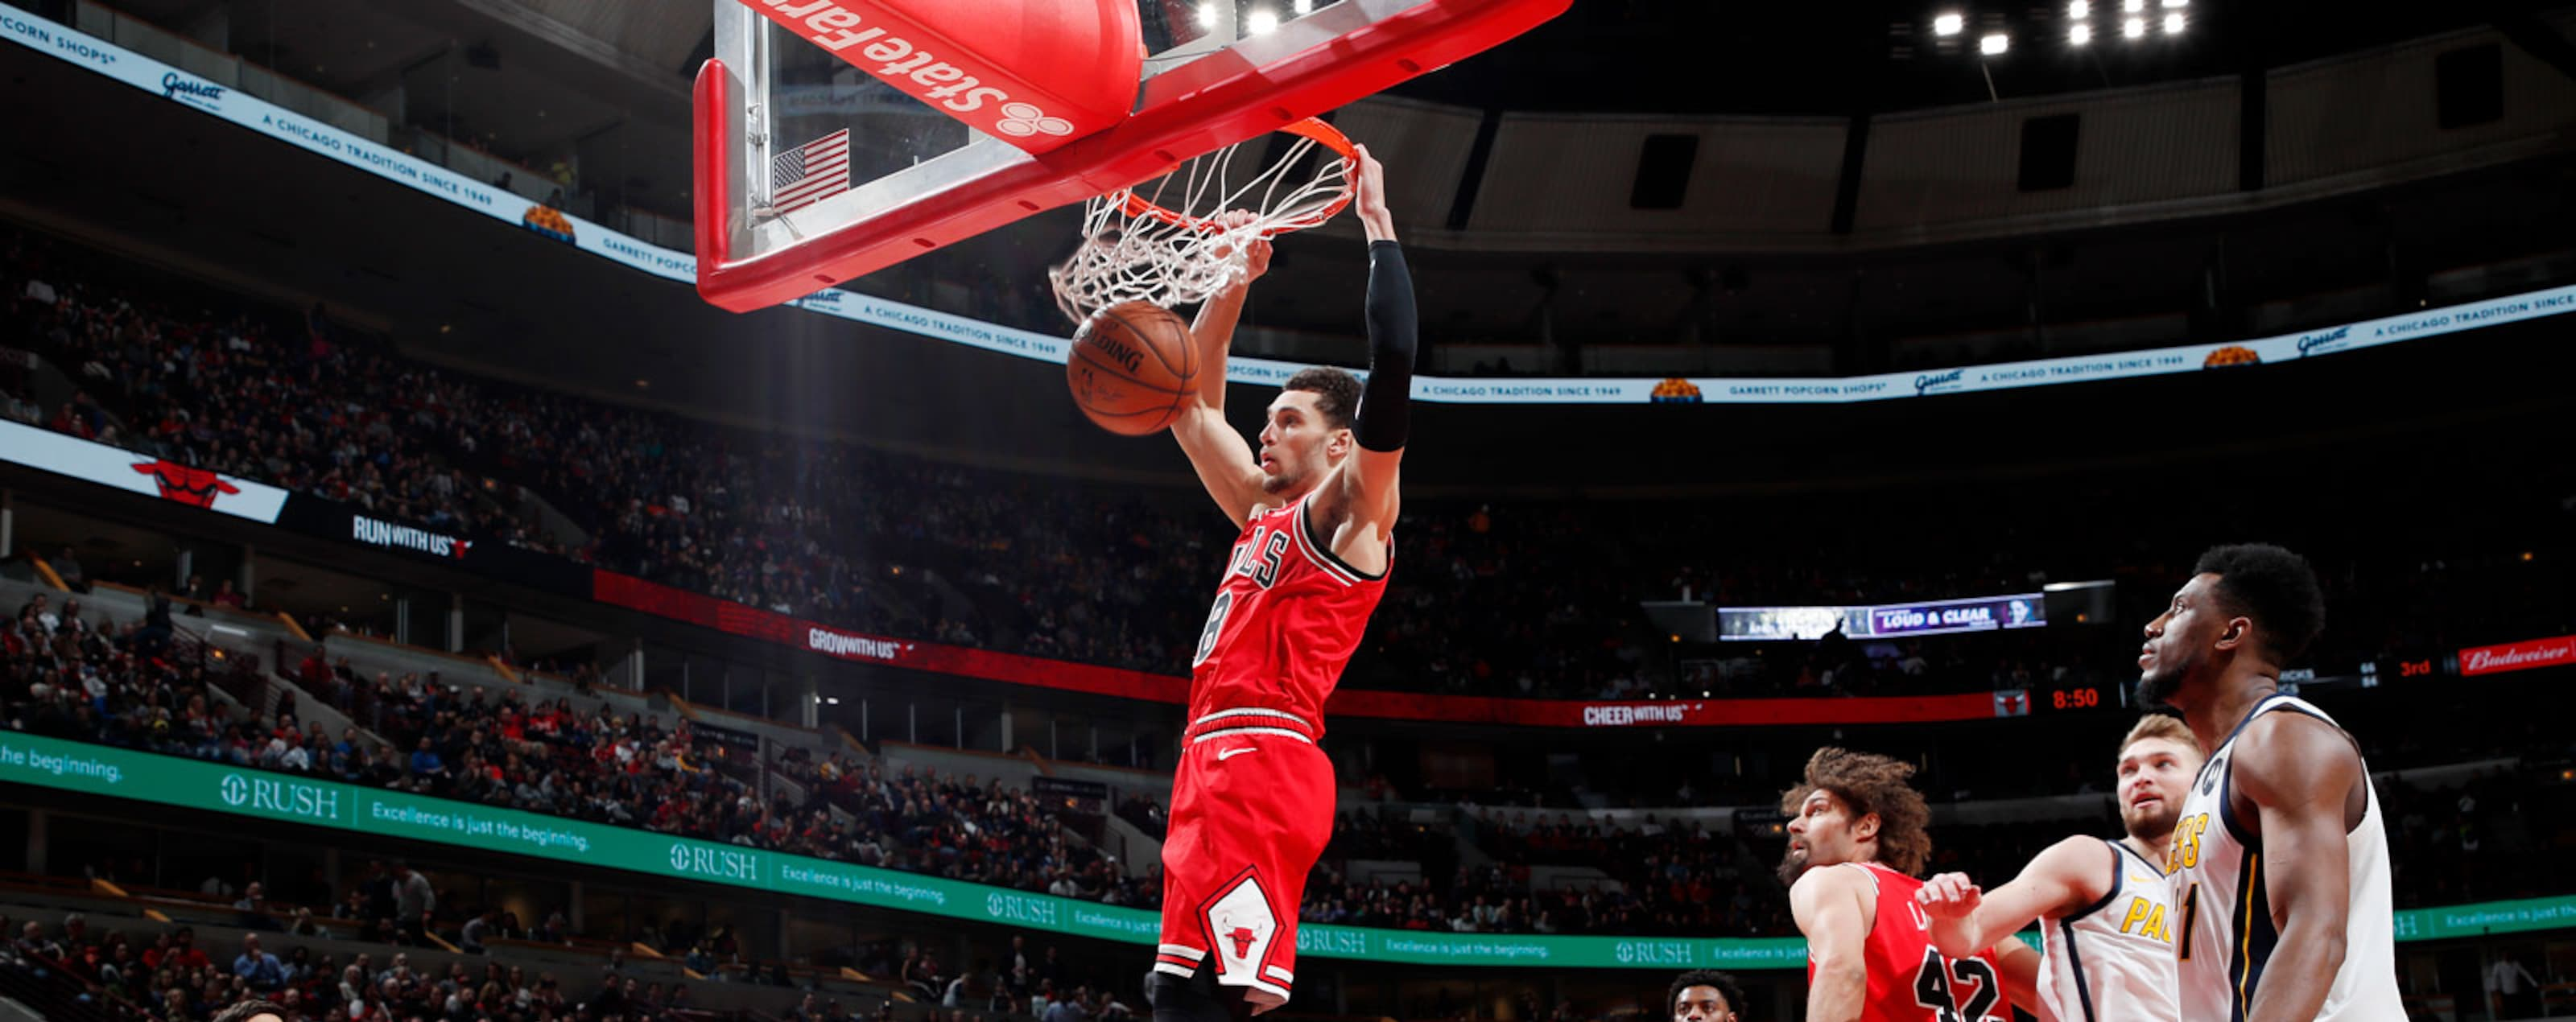 Zach LaVine #8 of the Chicago Bulls drives to the basket against the Indiana Pacers on January 4, 2019 at United Center in Chicago, Illinois.